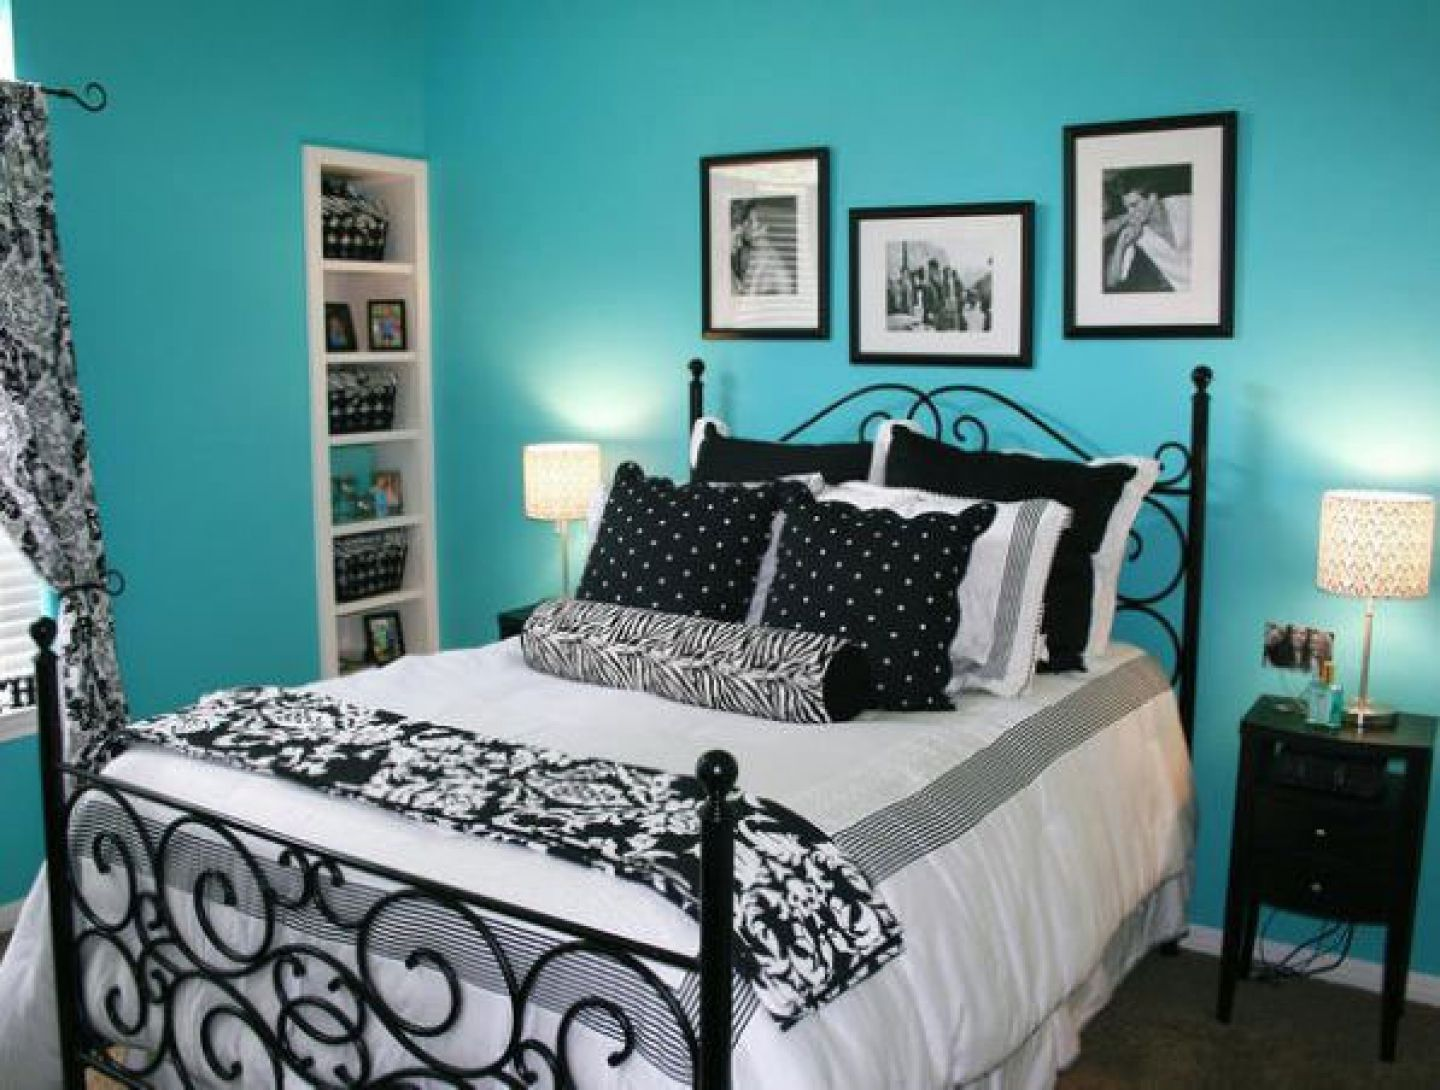 Comfy small bedroom idea for teen girls with cool turquoise wall paint color and vintage wall